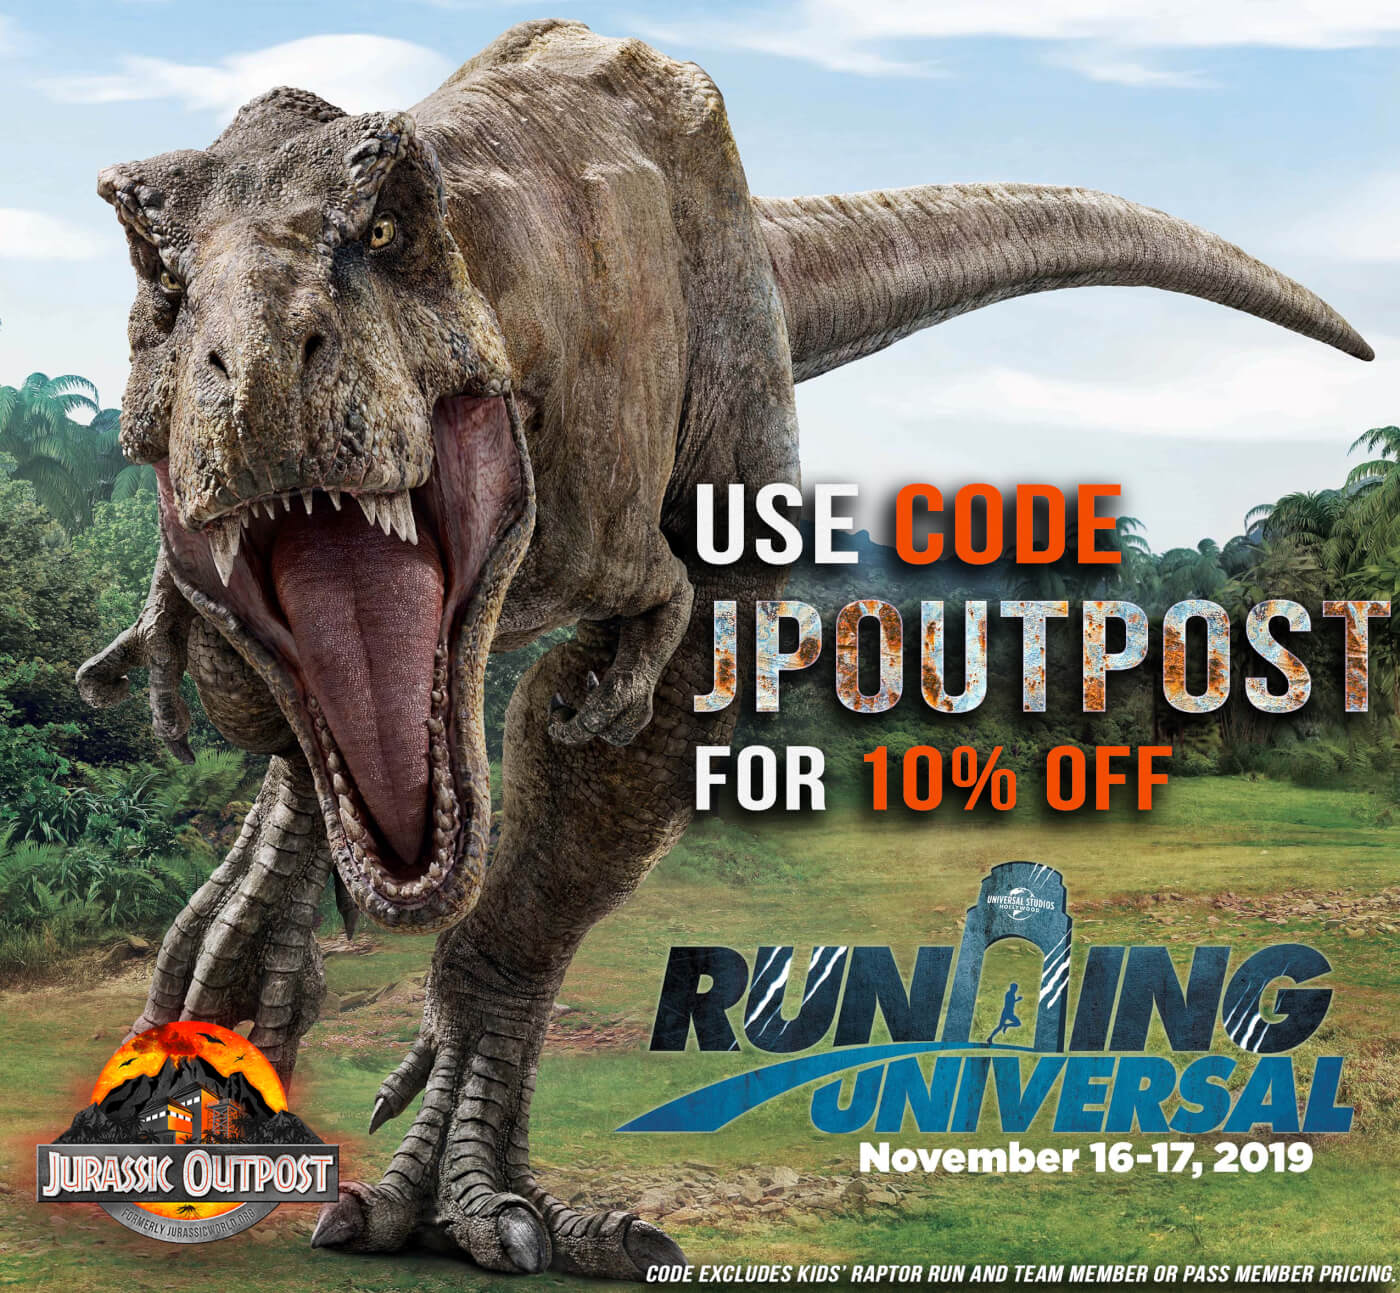 The Jurassic World themed 'Running Universal' Expands with 5k, 10k, Kids Run, and More!